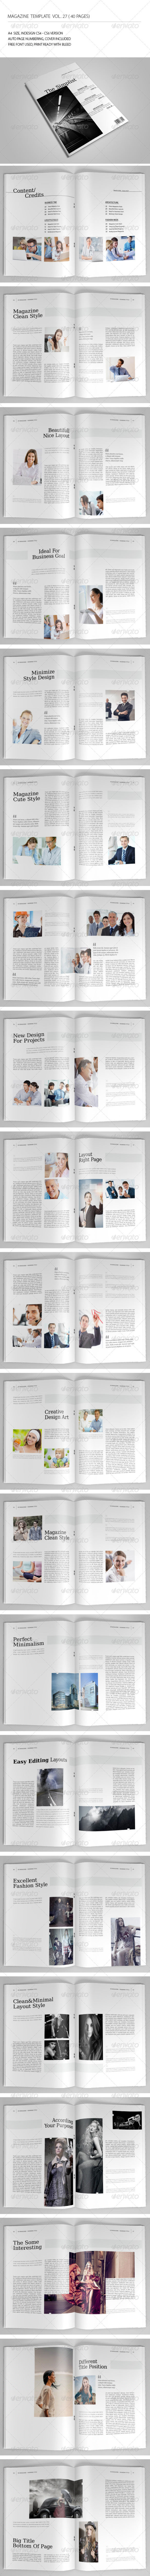 40 Pages Simple Magazine Vol27 - Magazines Print Templates